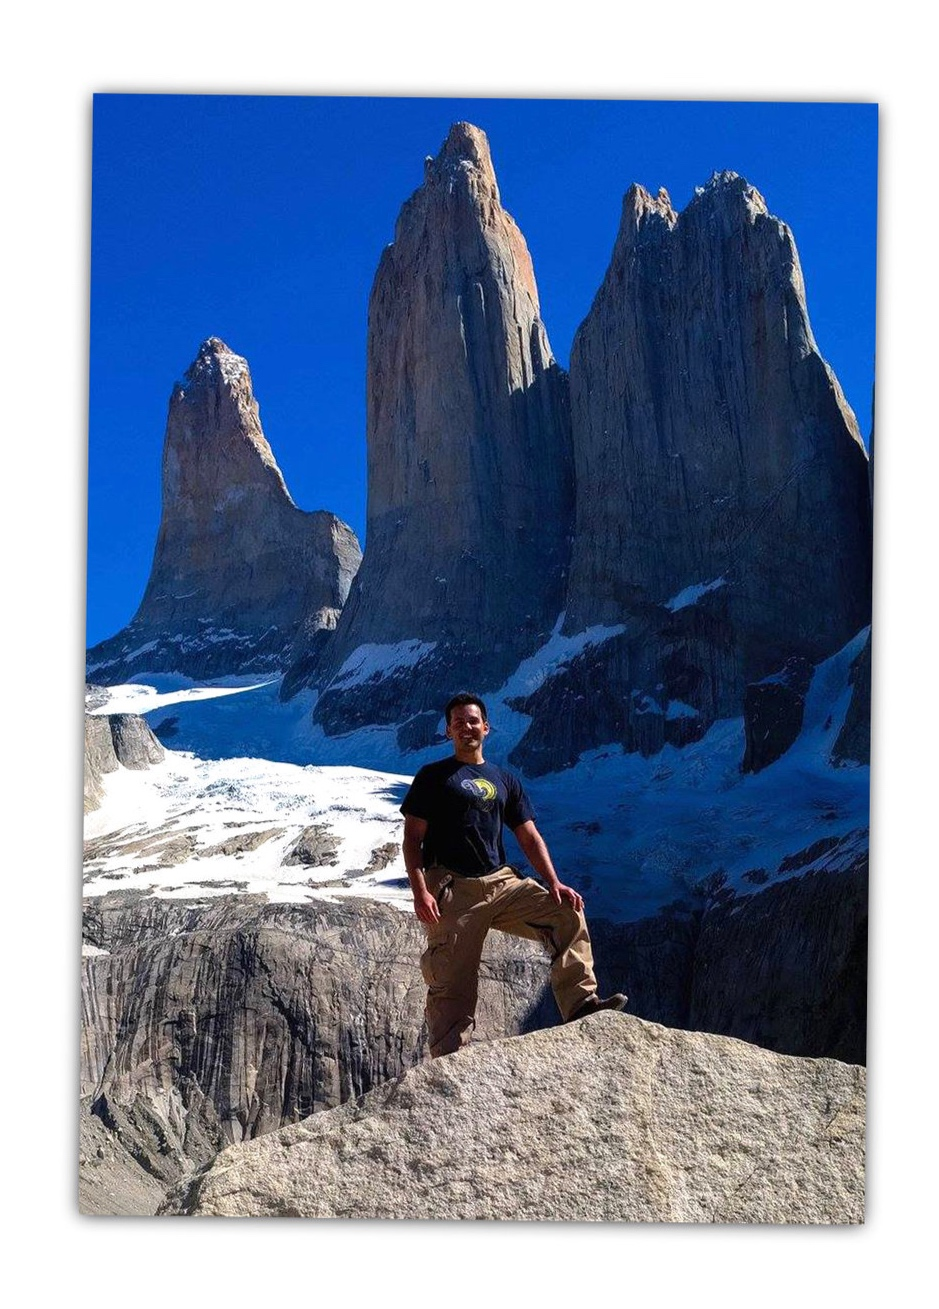 Hiking to the base of Torres del Paine in Patagonia.